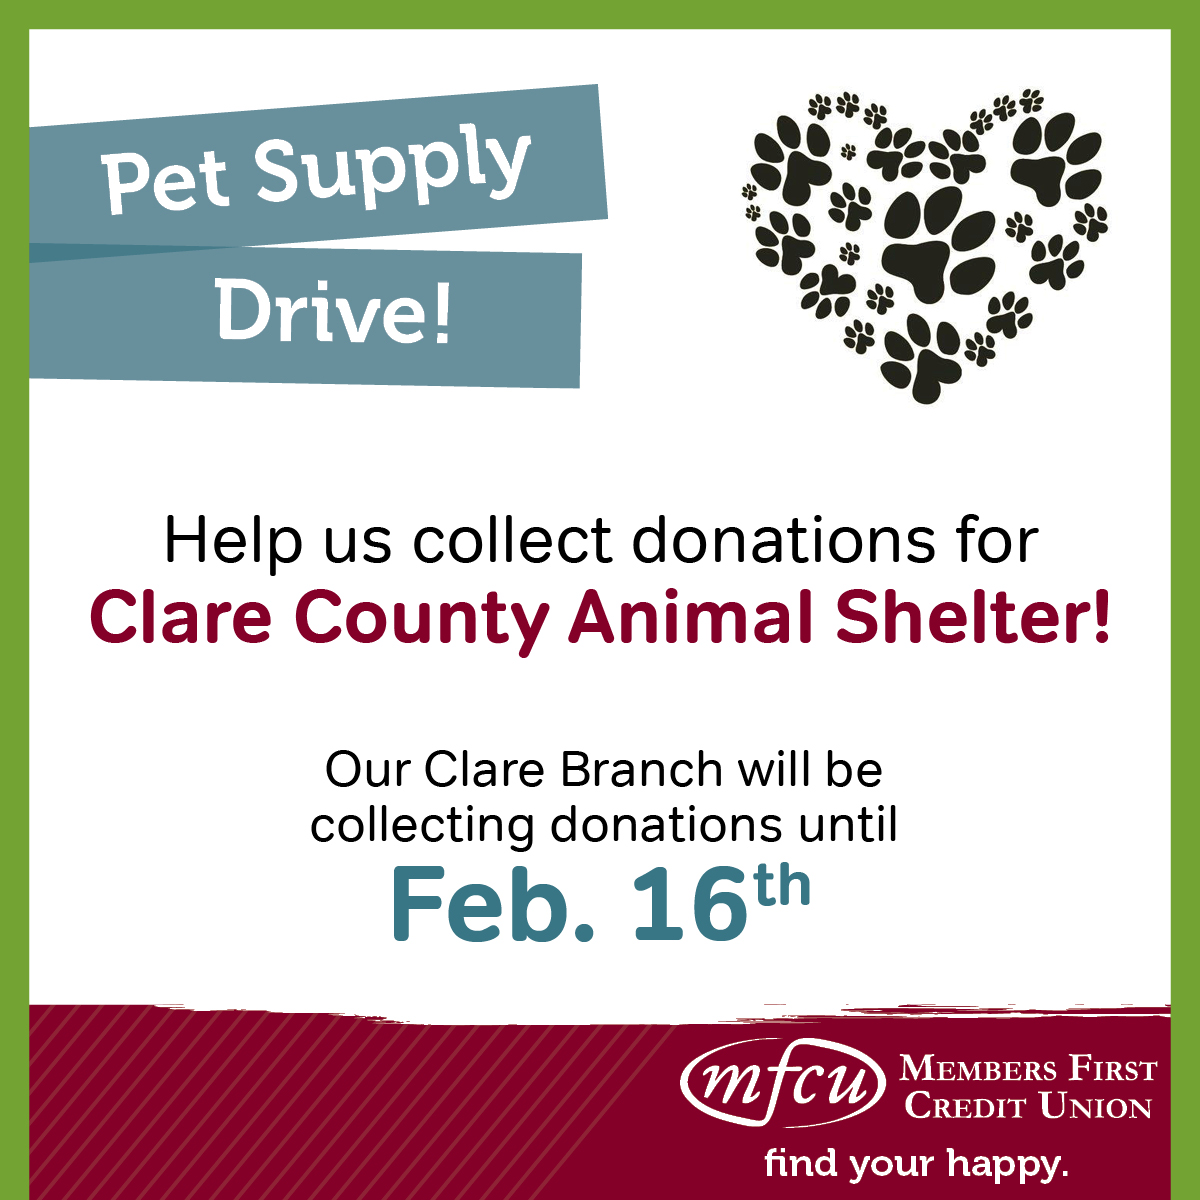 We are collecting pet supplies for the Clare County Animal Shelter until Feb. 16th!